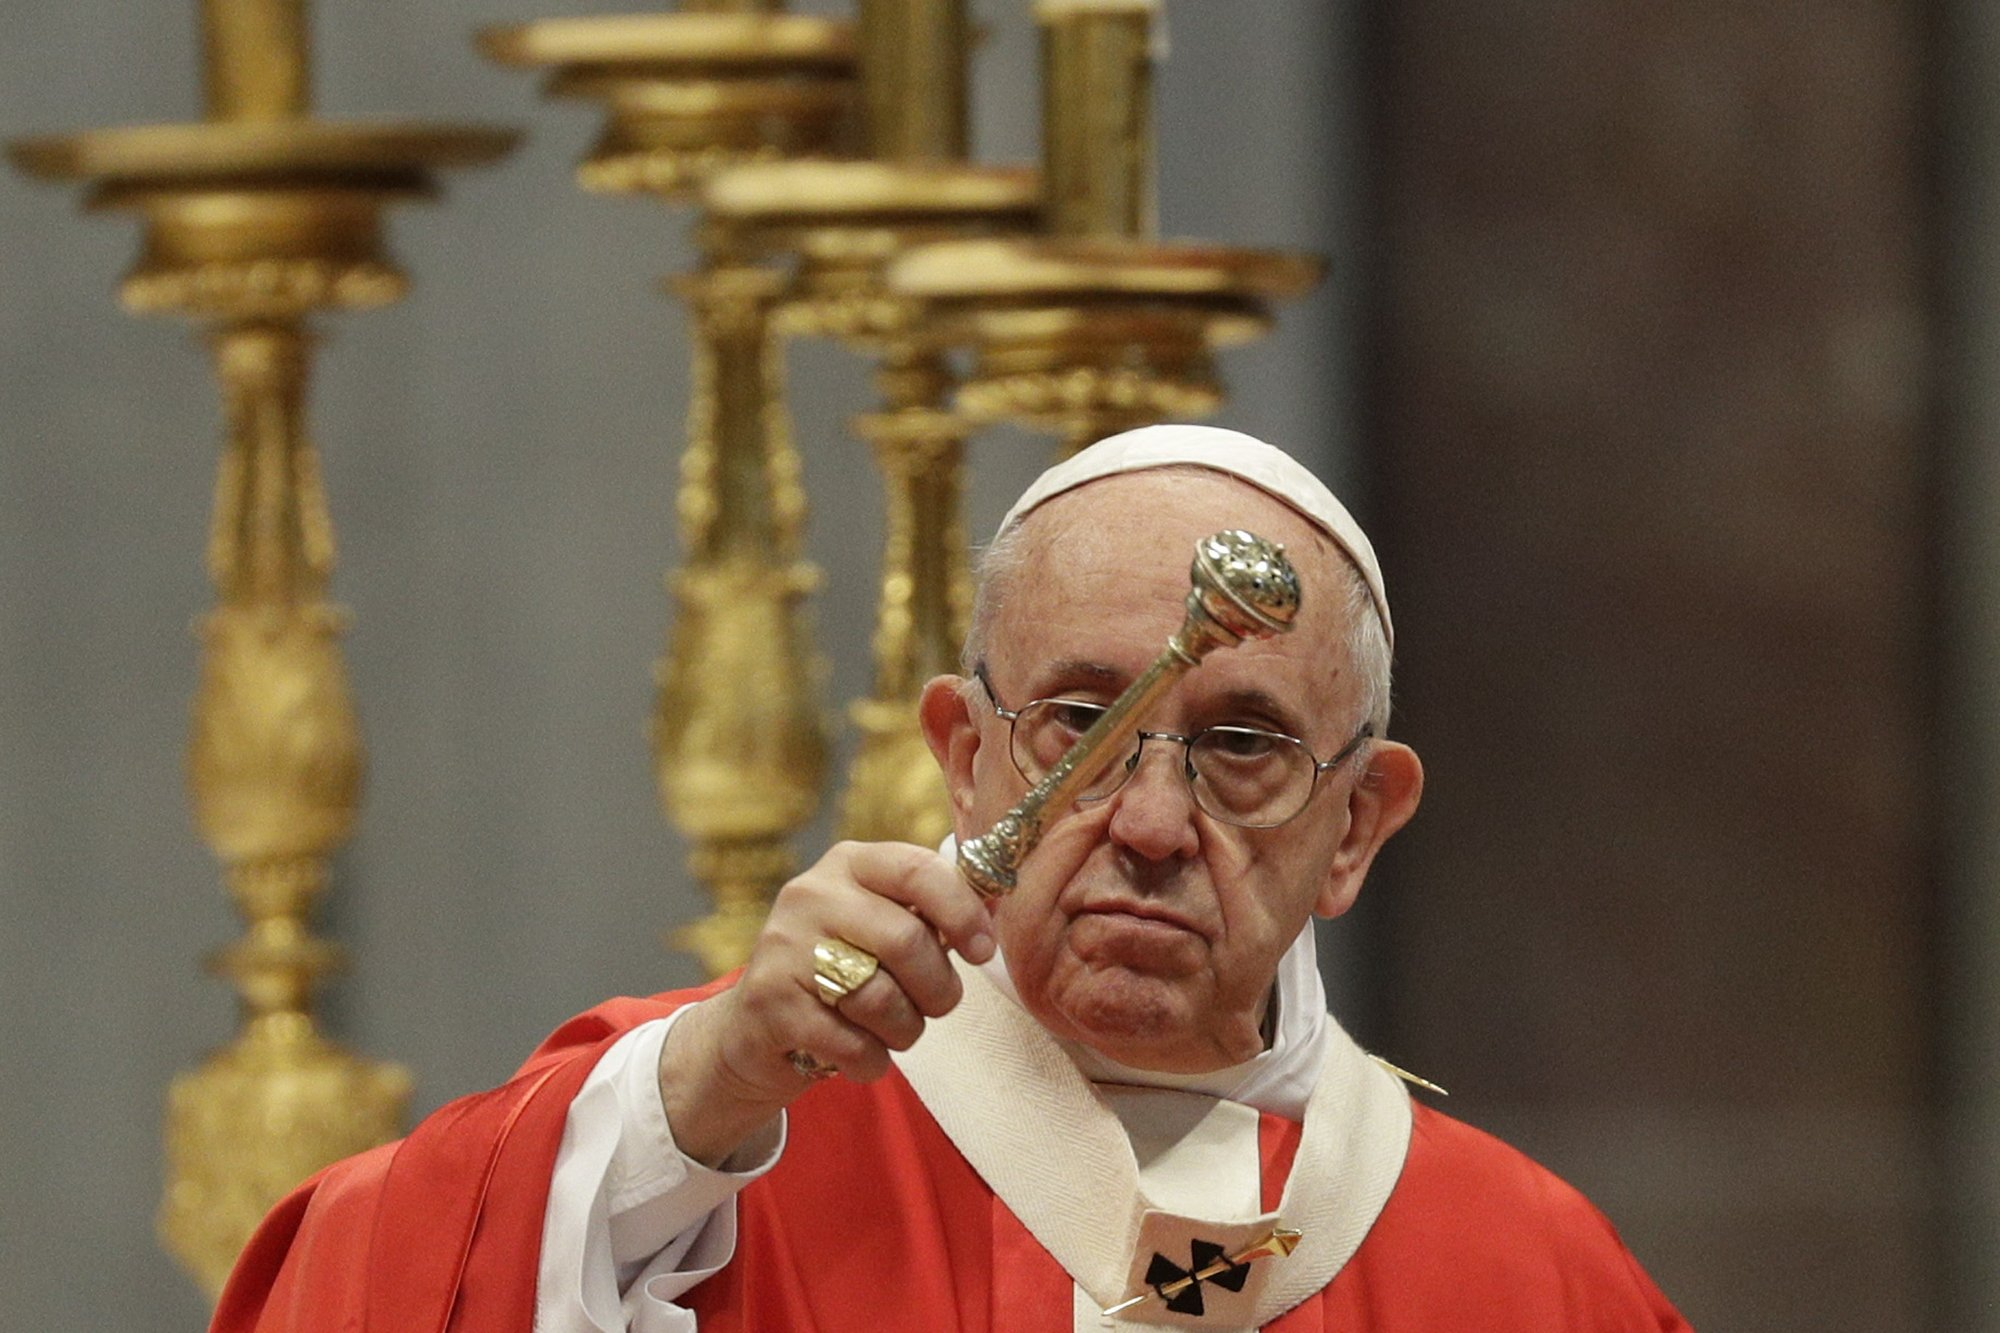 Popes teaching on homosexuality